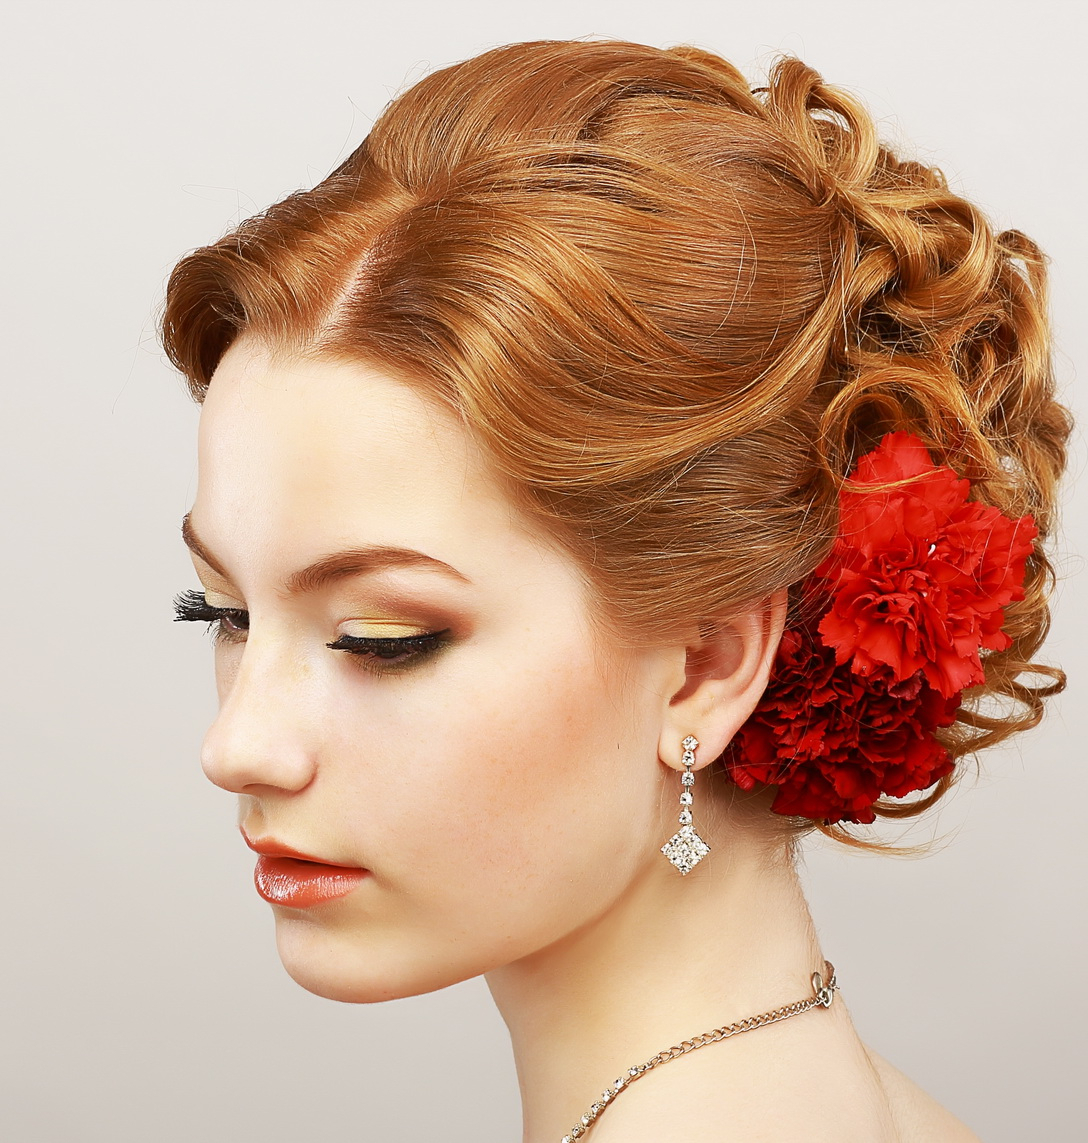 16 Easy Prom Hairstyles For Short And Medium Length Hair For Cute Short Hairstyles For Homecoming (View 20 of 25)